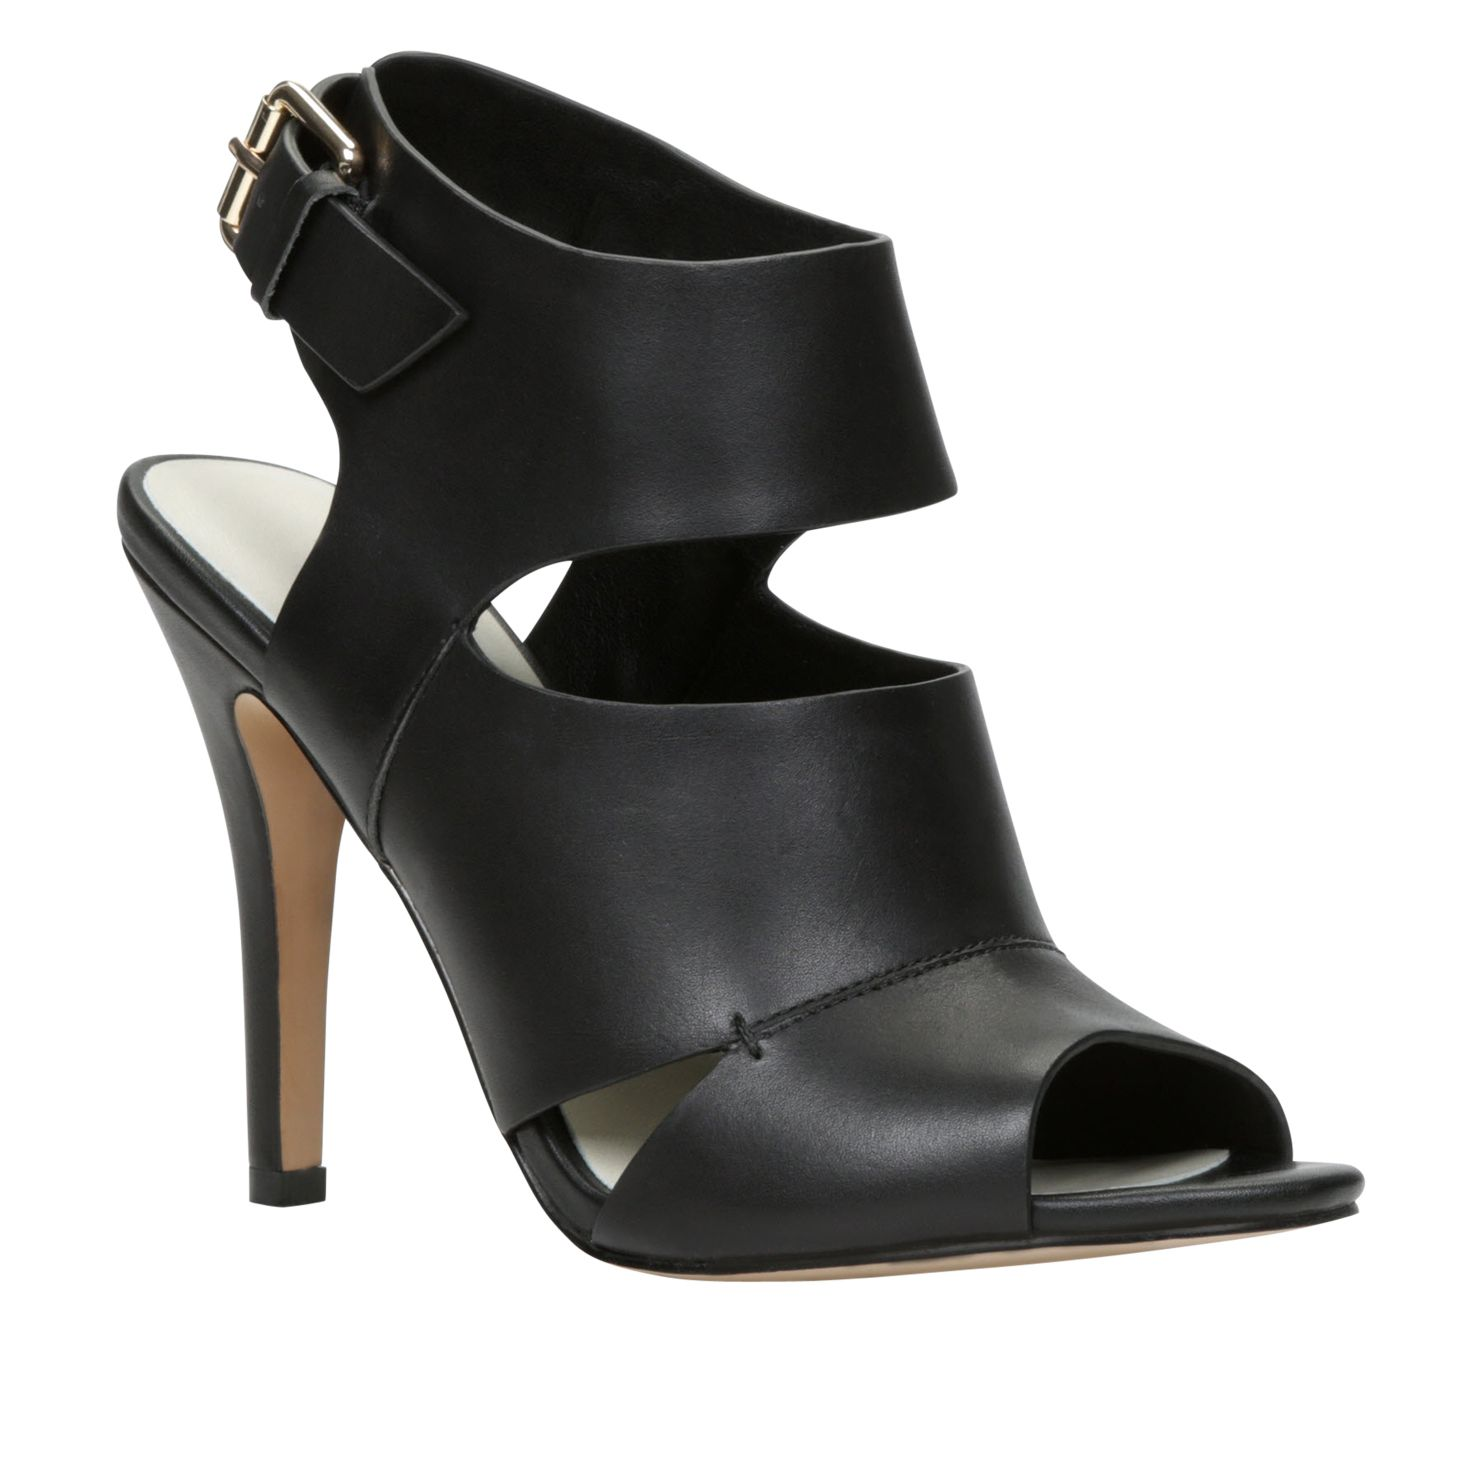 Kaoellan peep toe court shoes